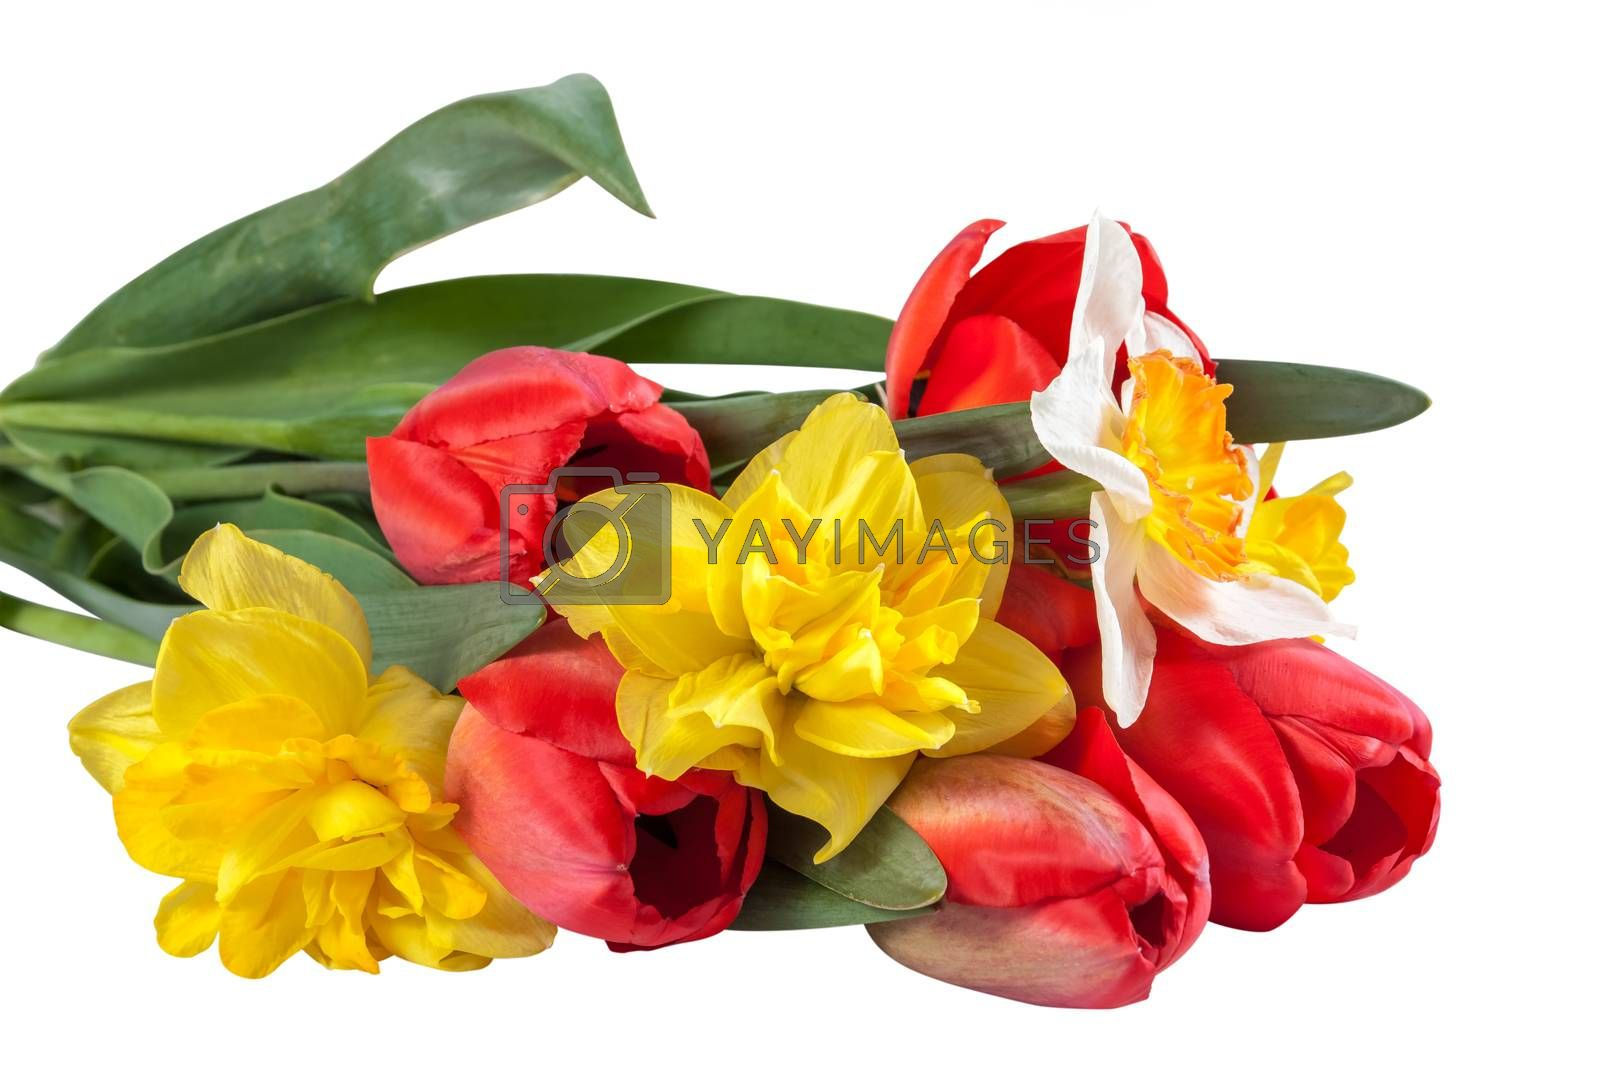 Bouquet of beautiful yellow narcissus and red tulips flower isolated on white background